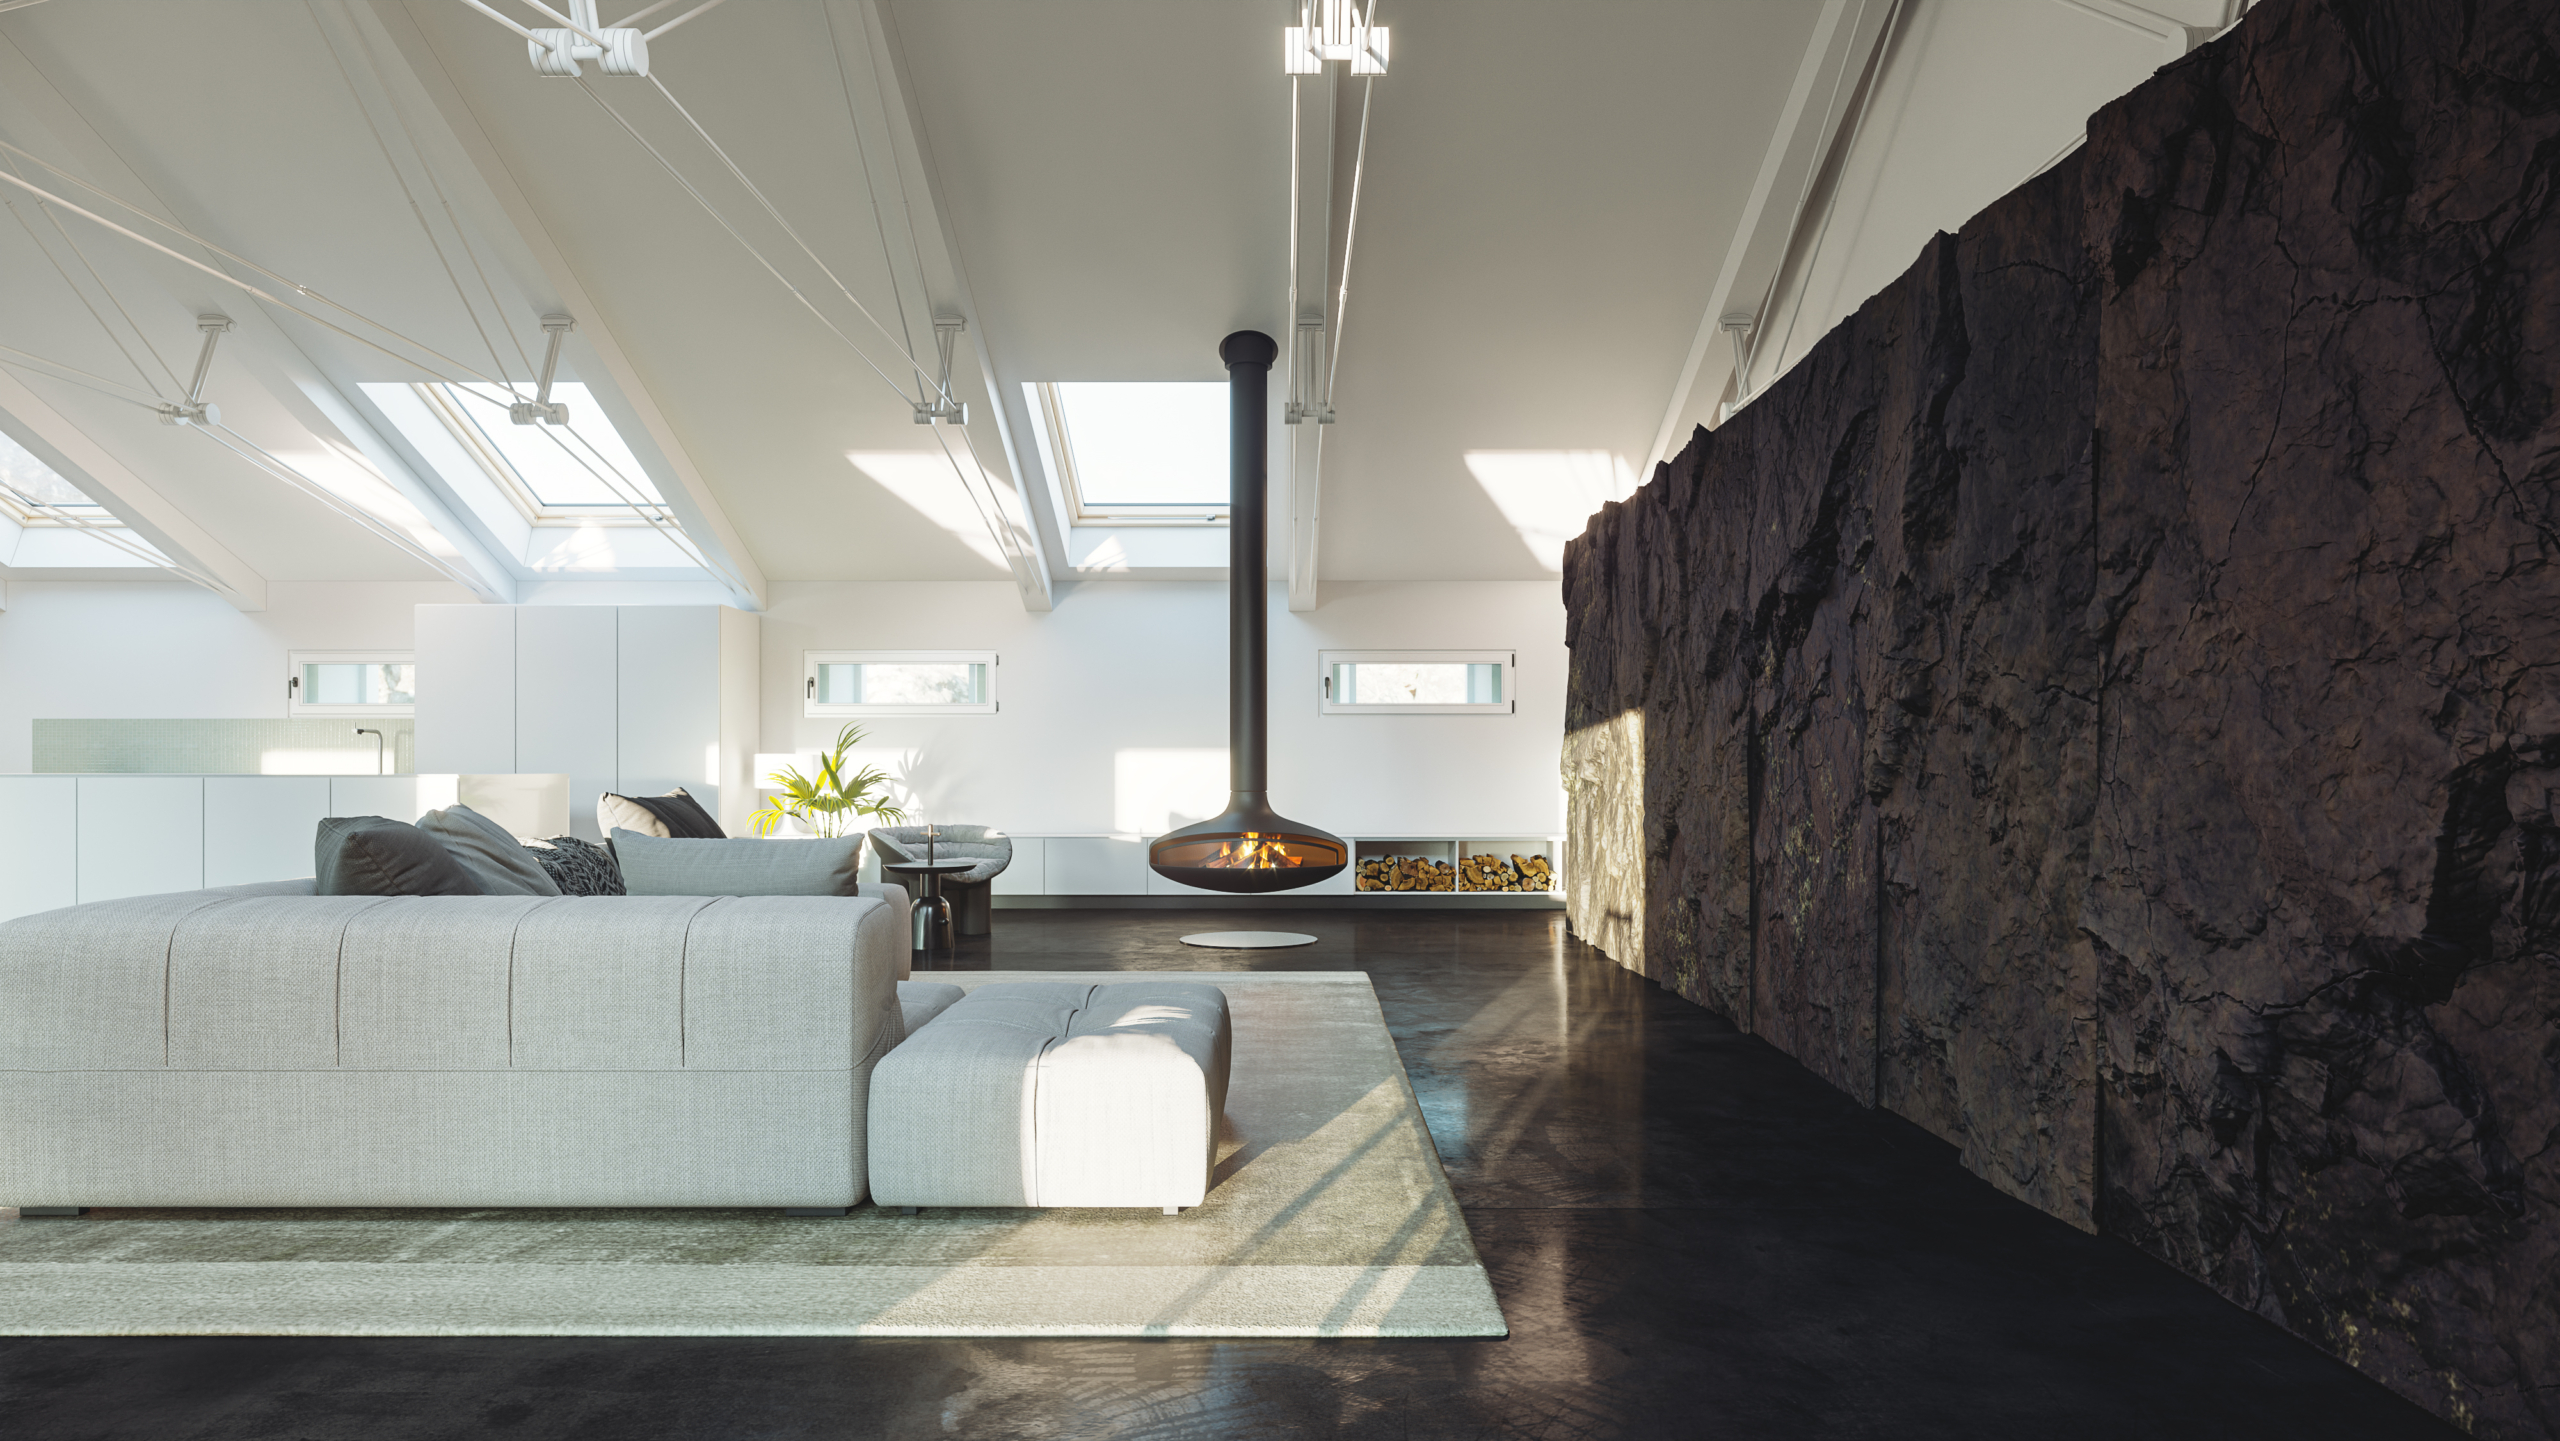 3d-rendering-Penthouse-Inspired-by-GEZA-Gri-e-Zucchine-Architettura-image-2